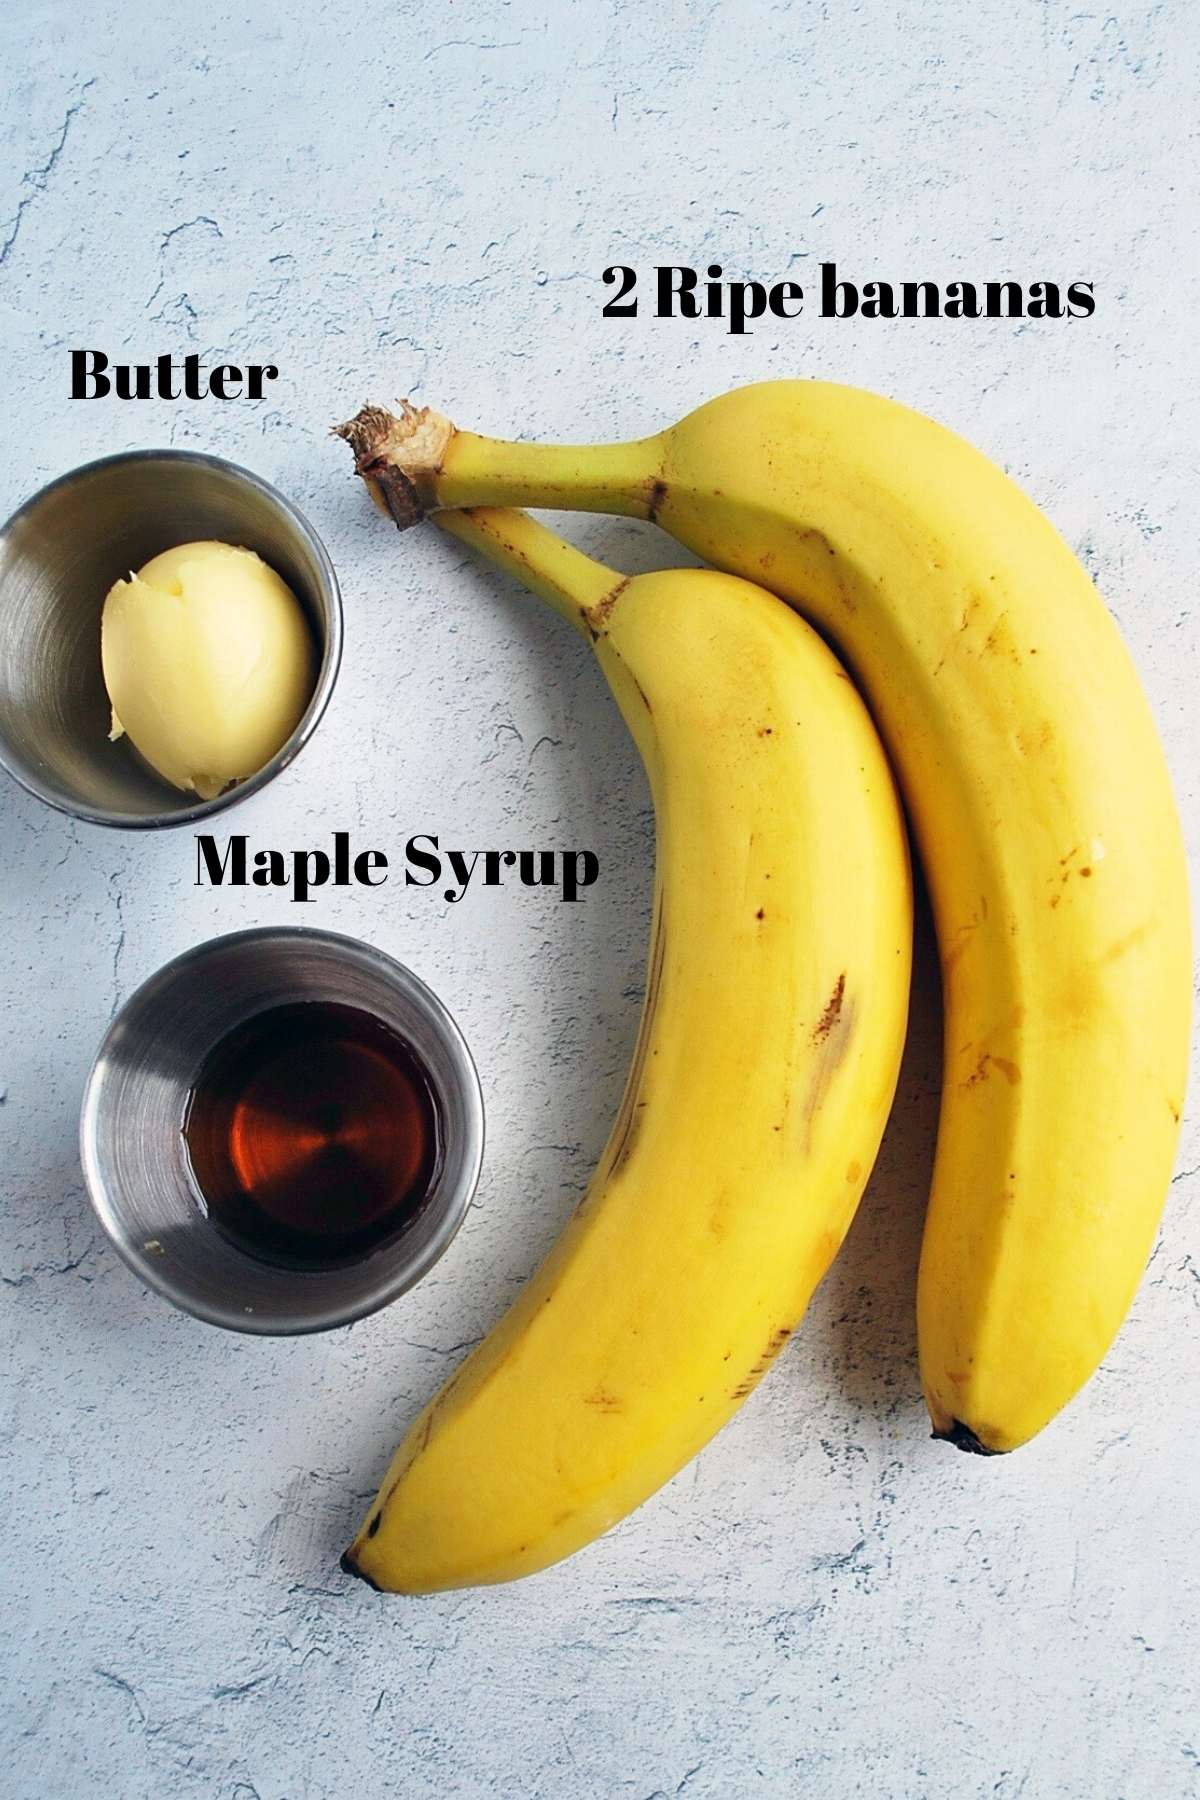 ingredients for caramelized bananas: banana, maple syrup, and butter